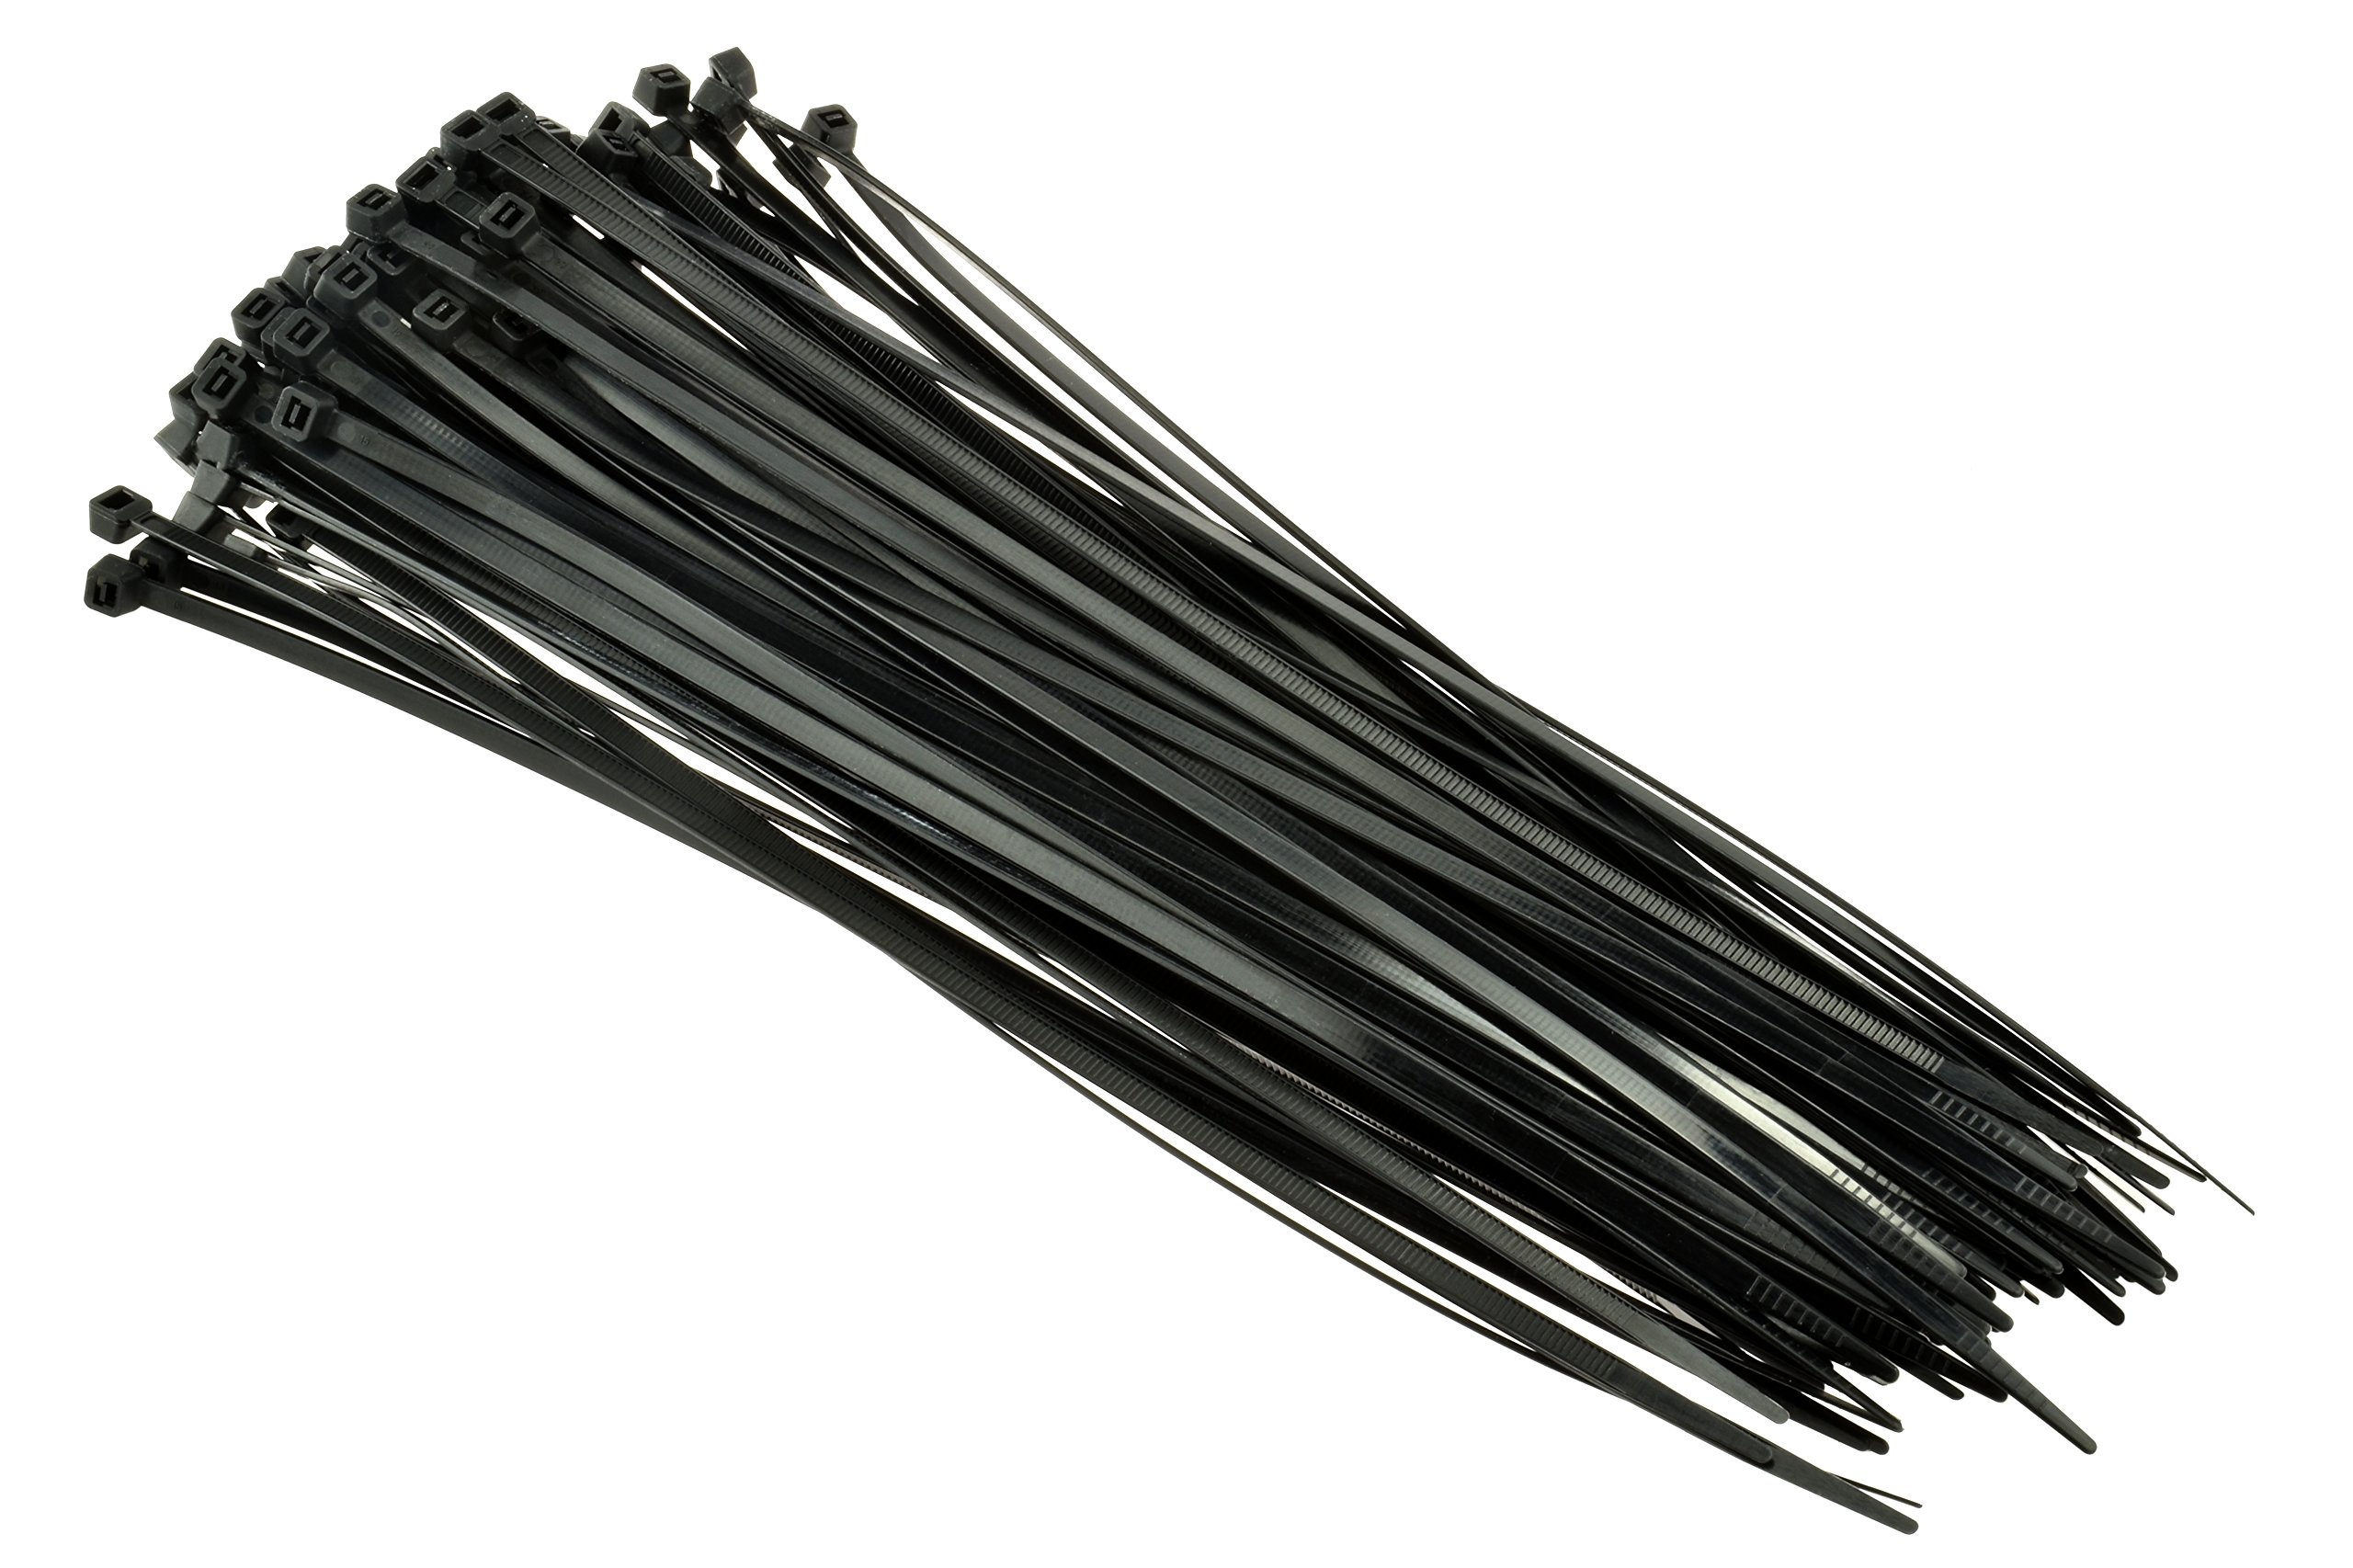 SE CT1676B Heavy-Duty 16'' Black Cable Ties with 110-lb. Tensile Strength (100 Count)